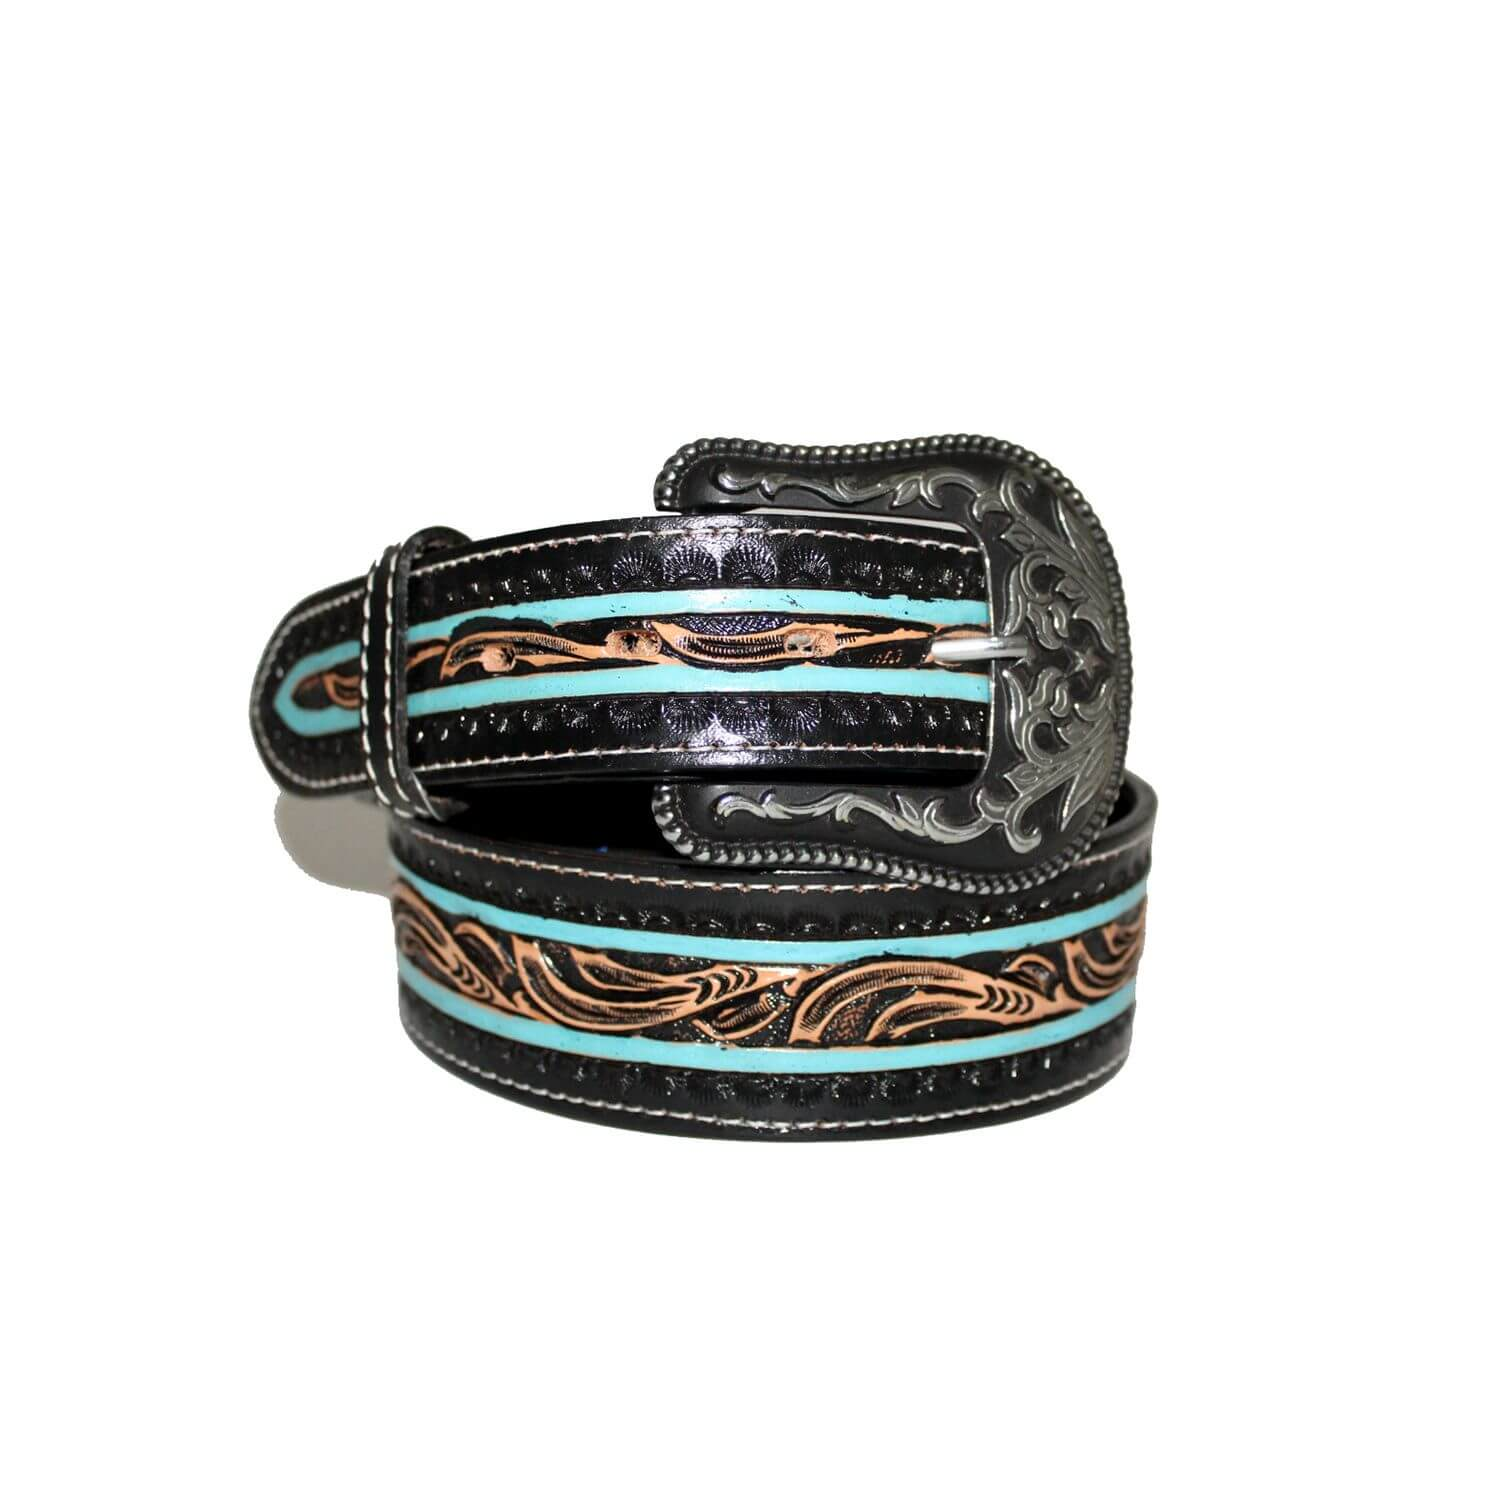 Cinto Arizona Belts Preto 7101 - Arena Country Echaporã 75fca7be2db